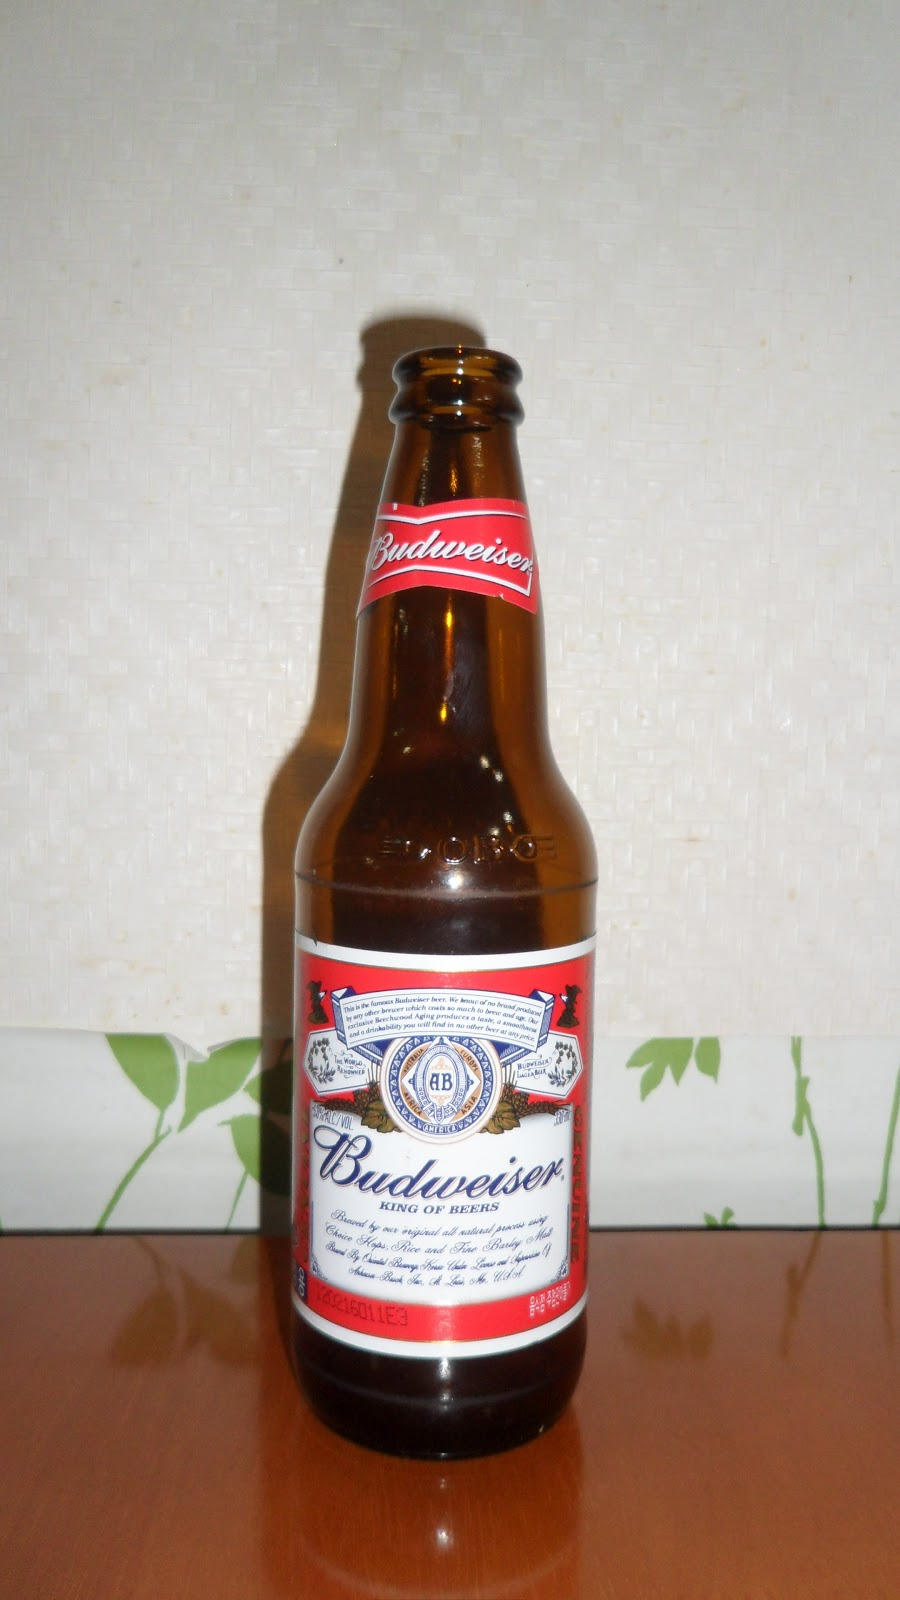 Gypsy Scholar: Budweiser: King of Beer